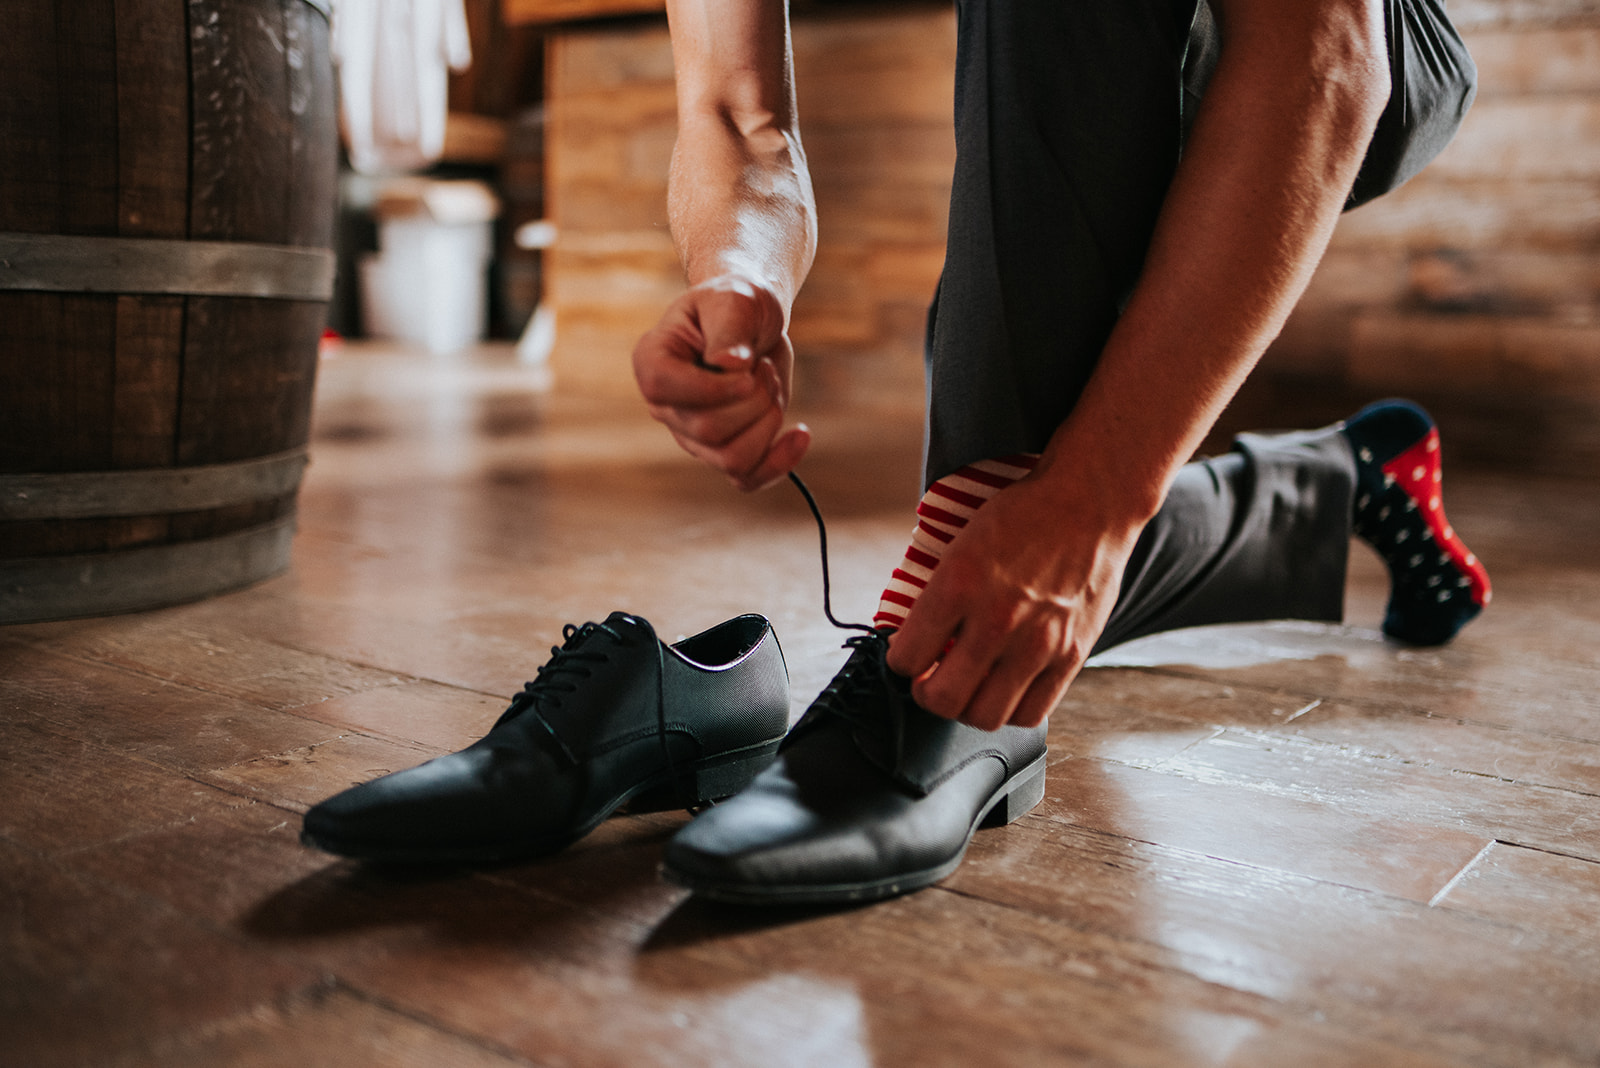 overthevineswisconsinwedding_0218.jpg